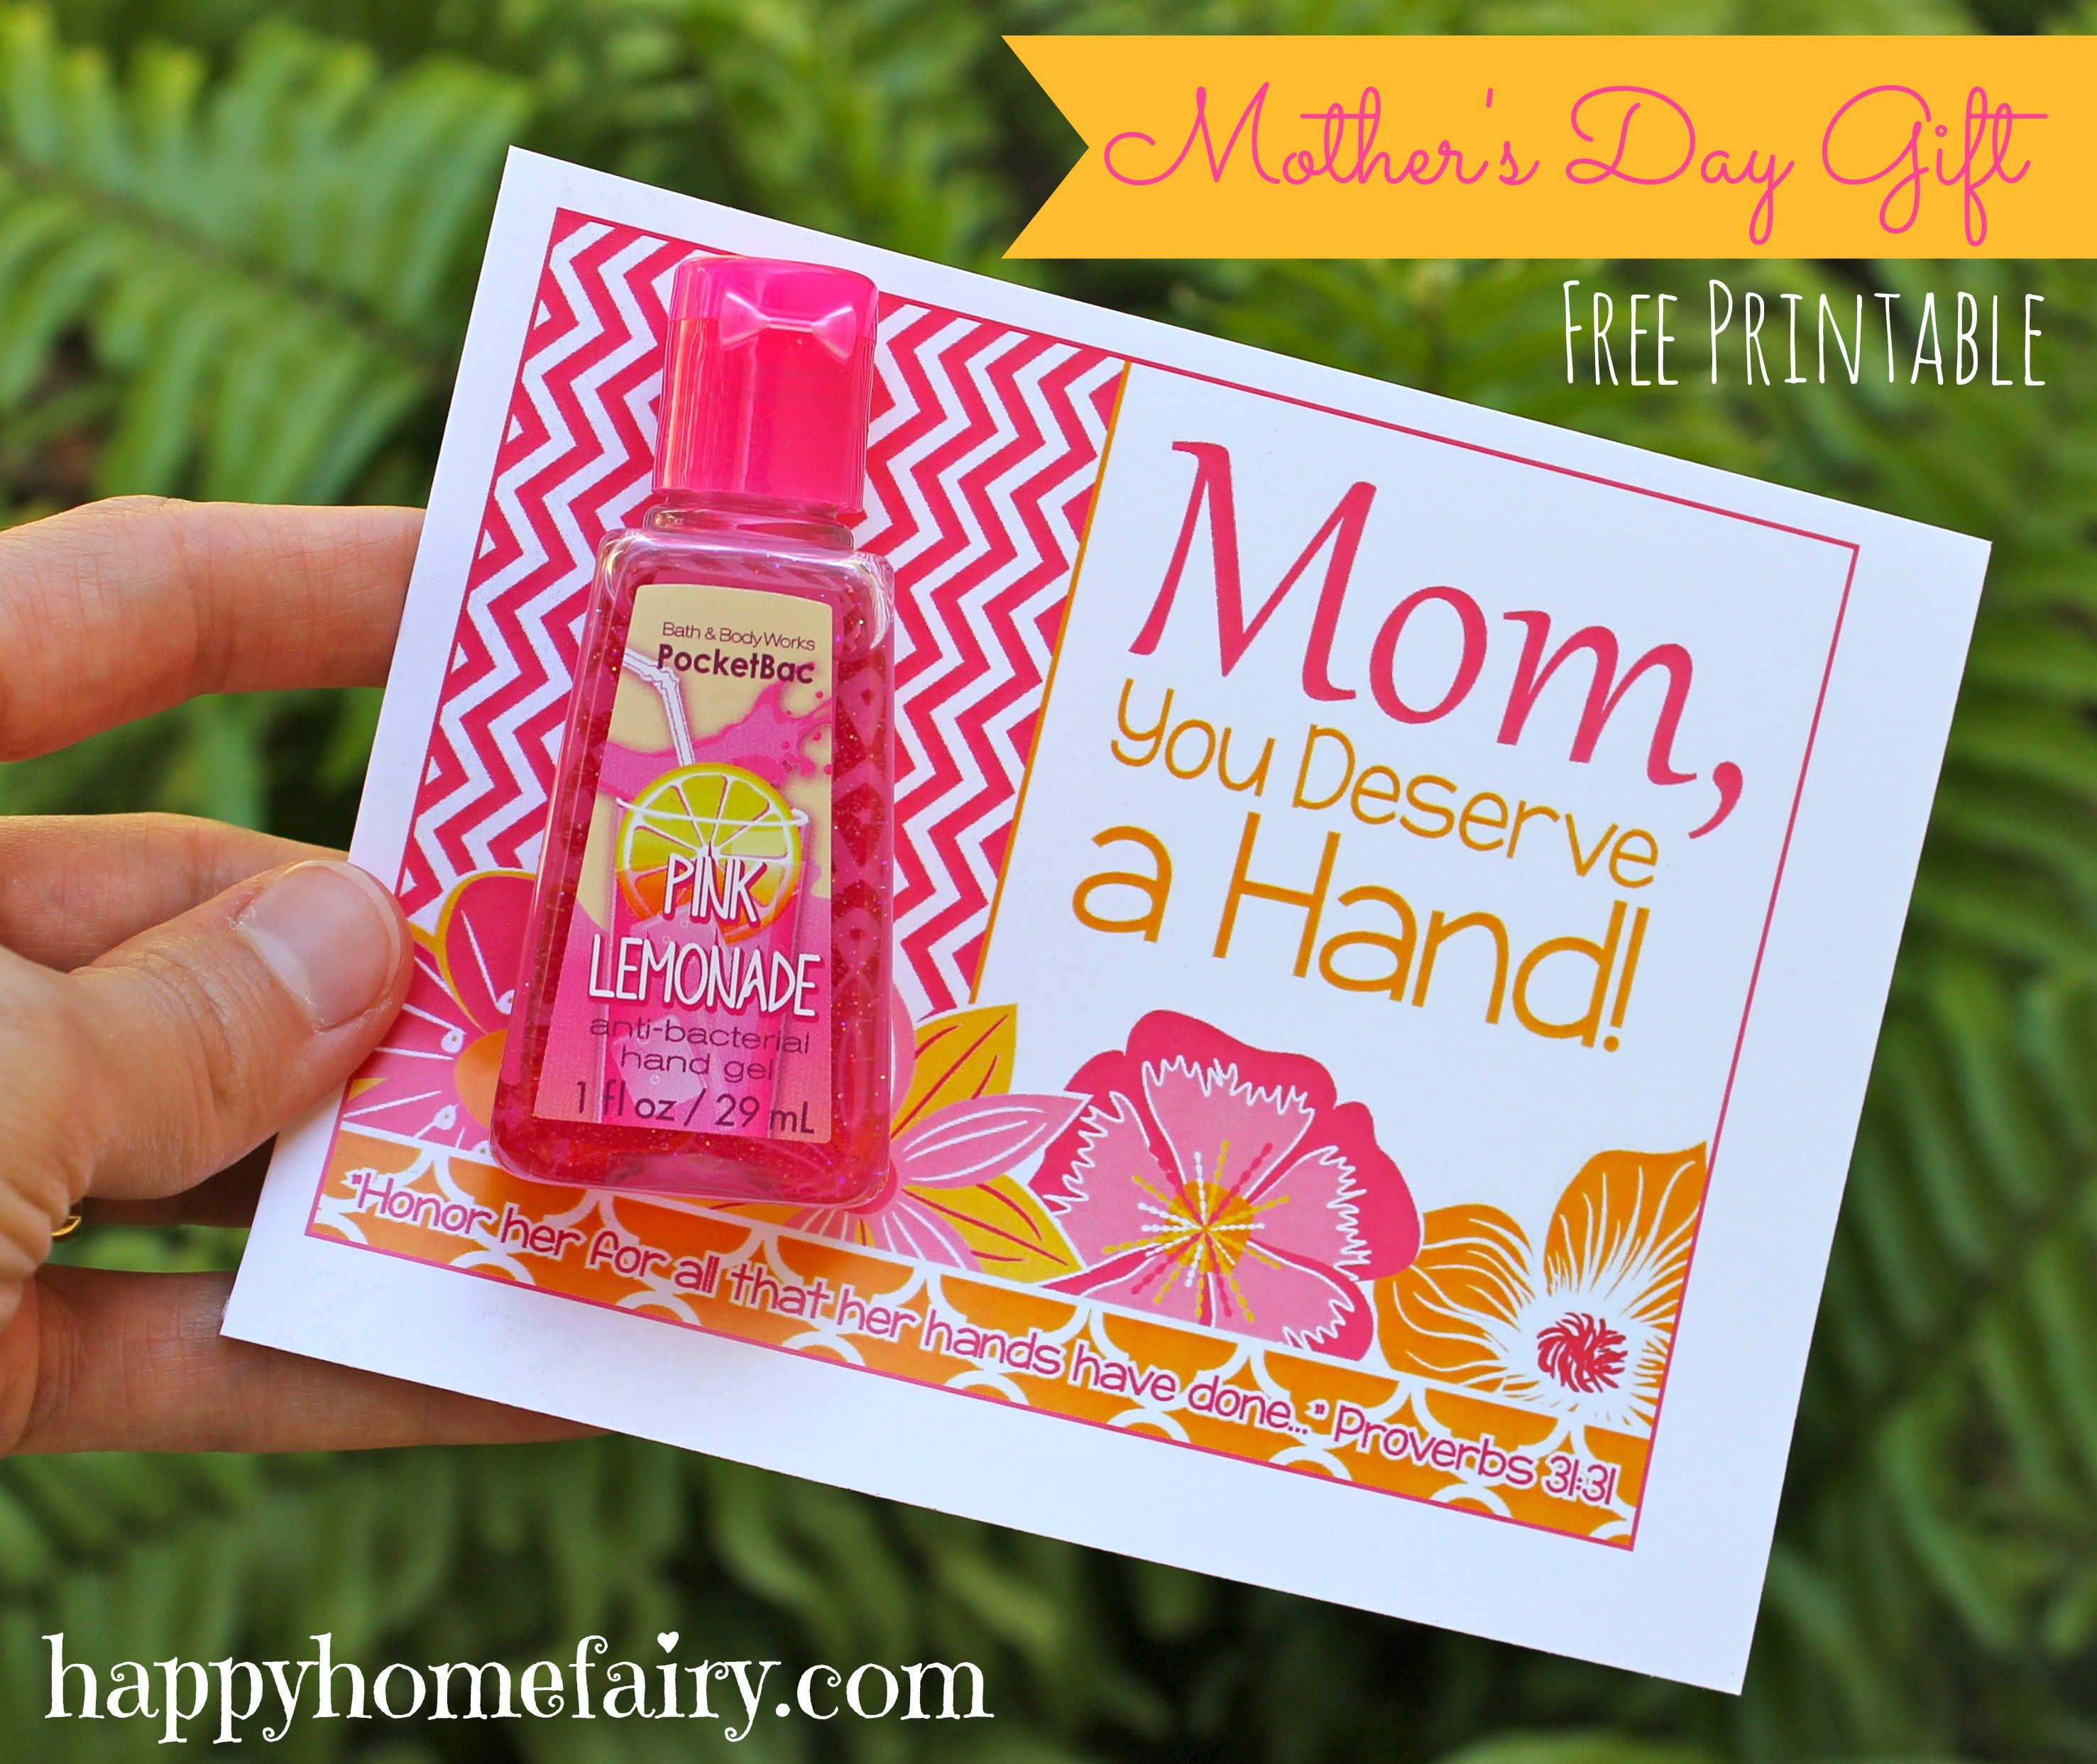 Good Mothers Day Gift Ideas  Easy Mother s Day Gift Idea FREE Printable Happy Home